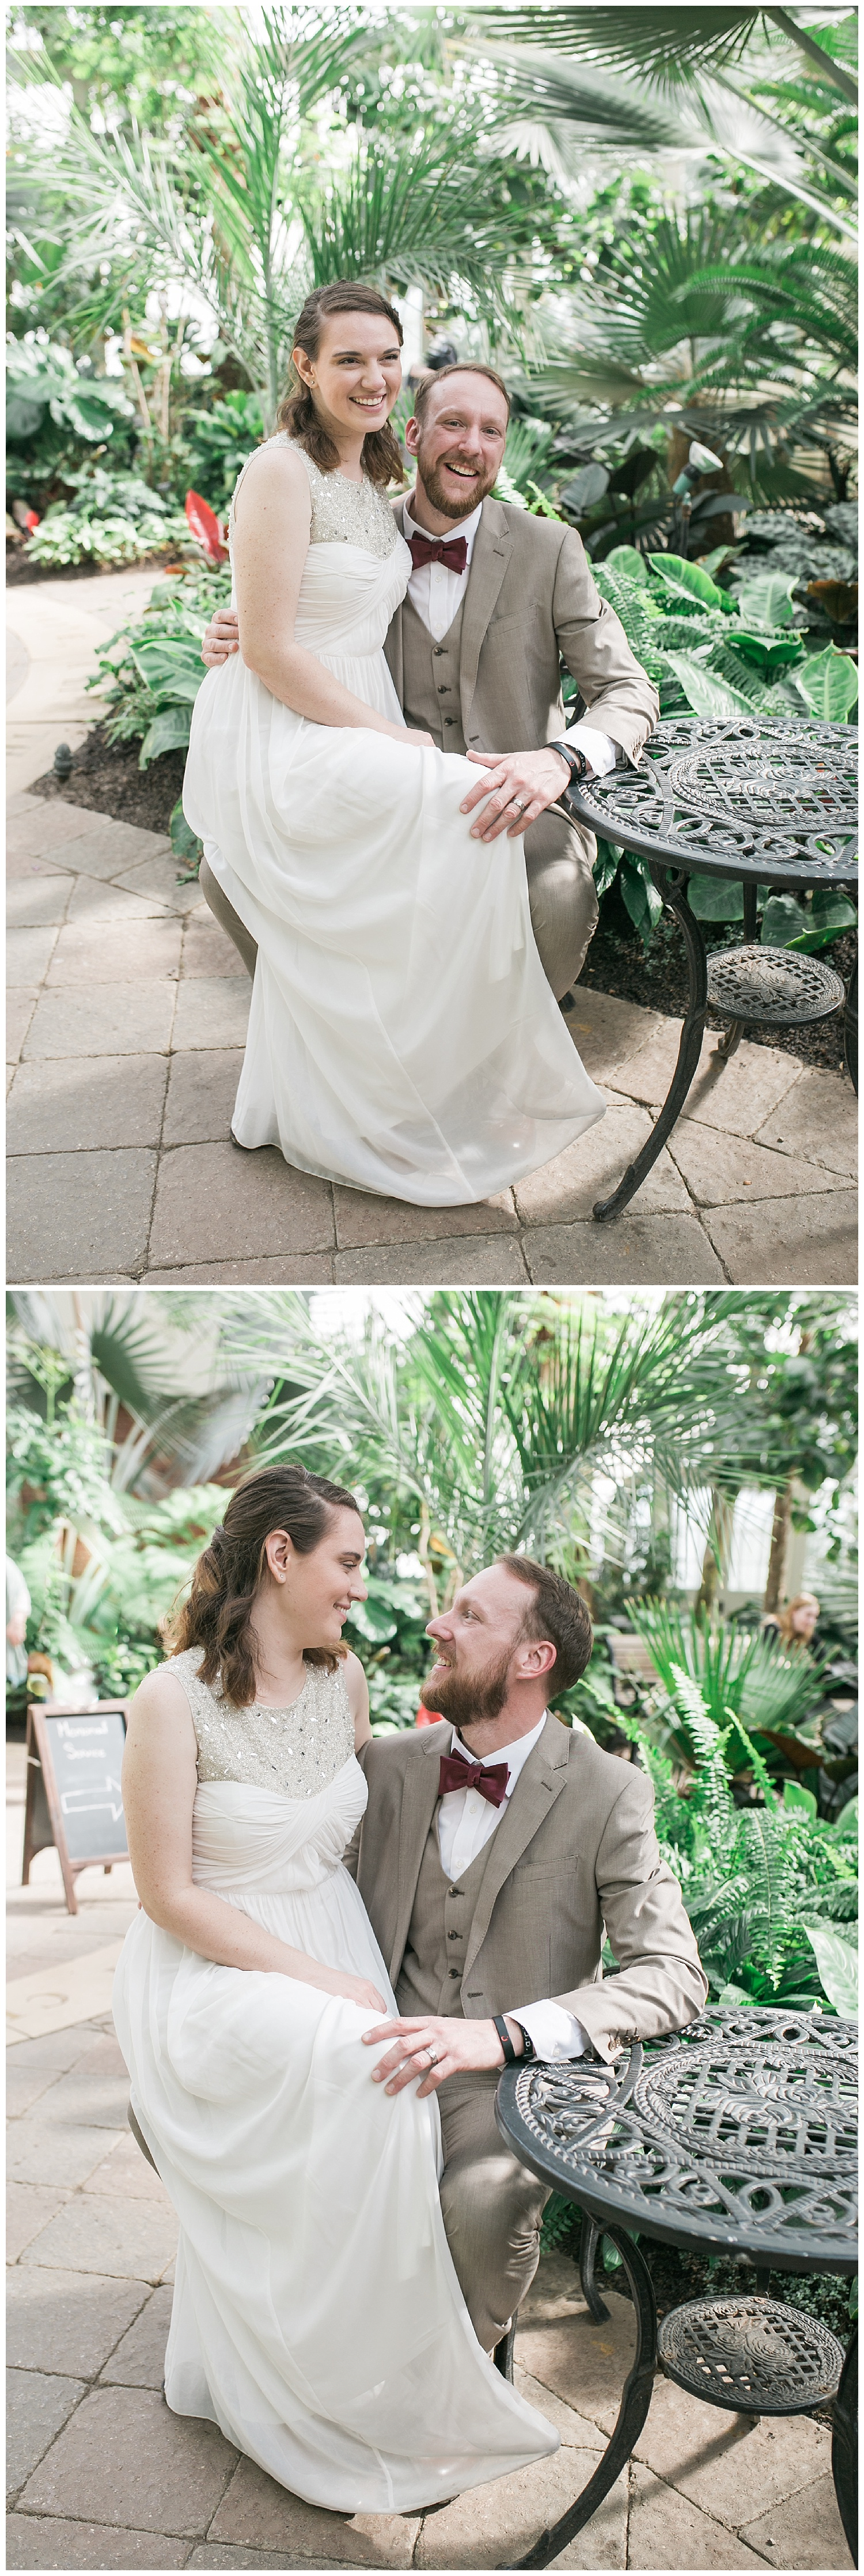 Buffalo Botanical gardens wedding - Buffalo NY Lass and Beau 80.jpg